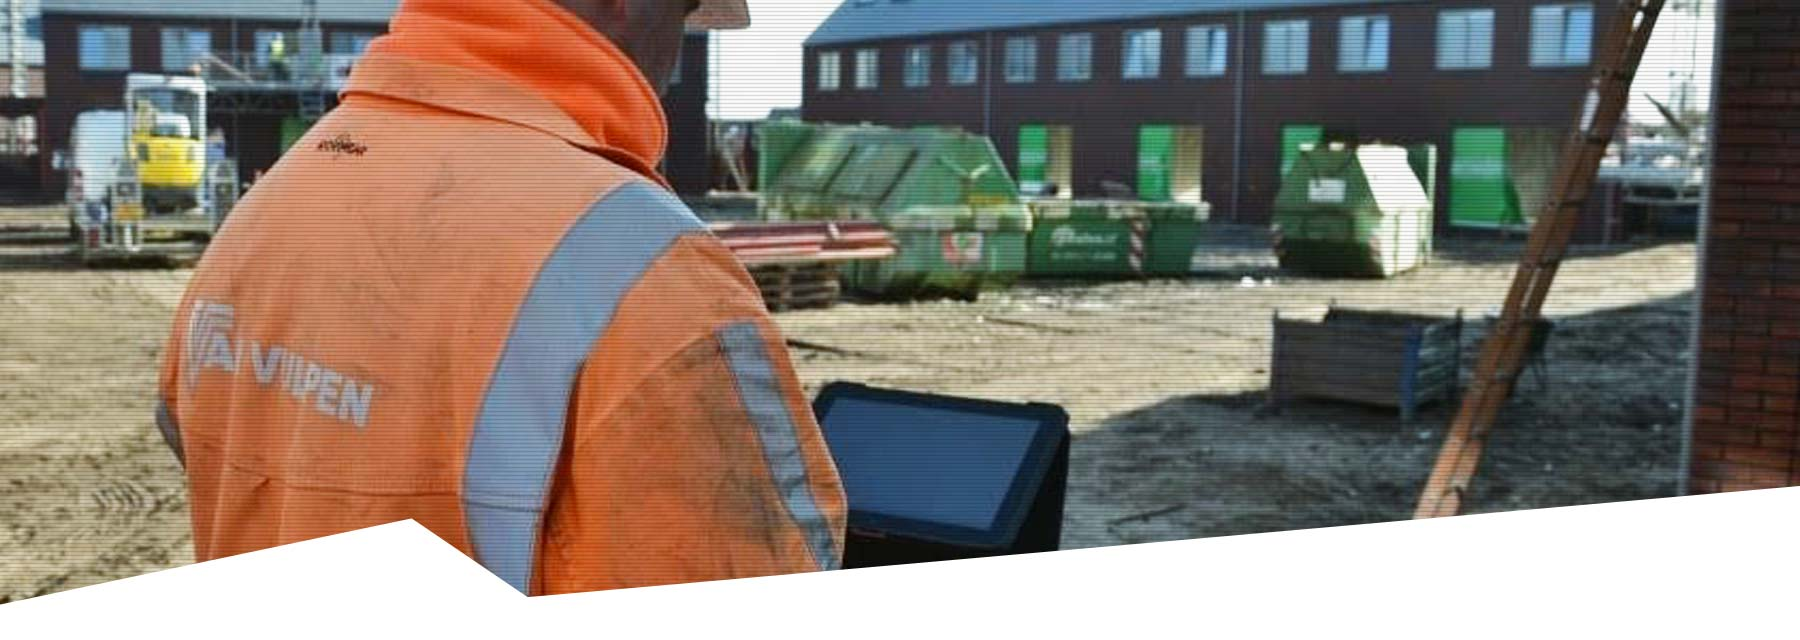 geodirect controllers tablets